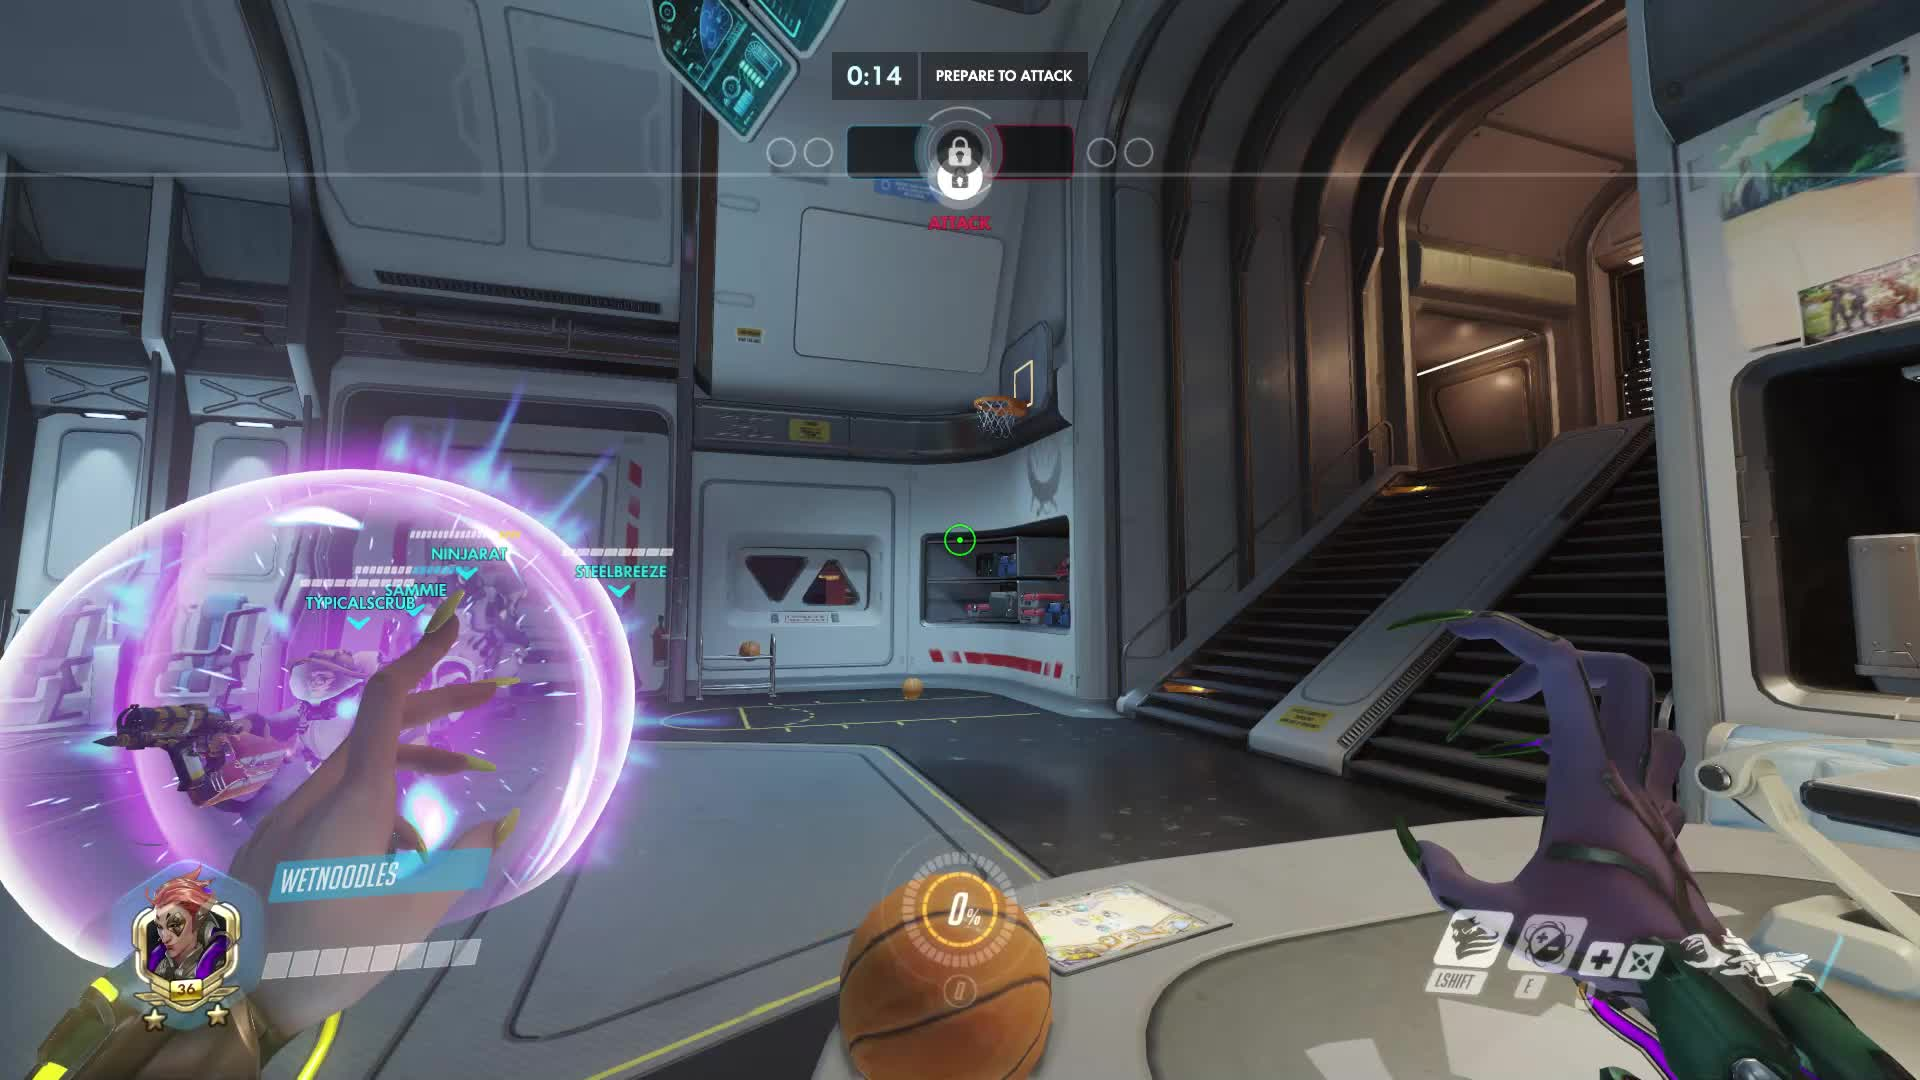 basketball, comedy, highlight, moira, overwatch, unlikely,  GIFs